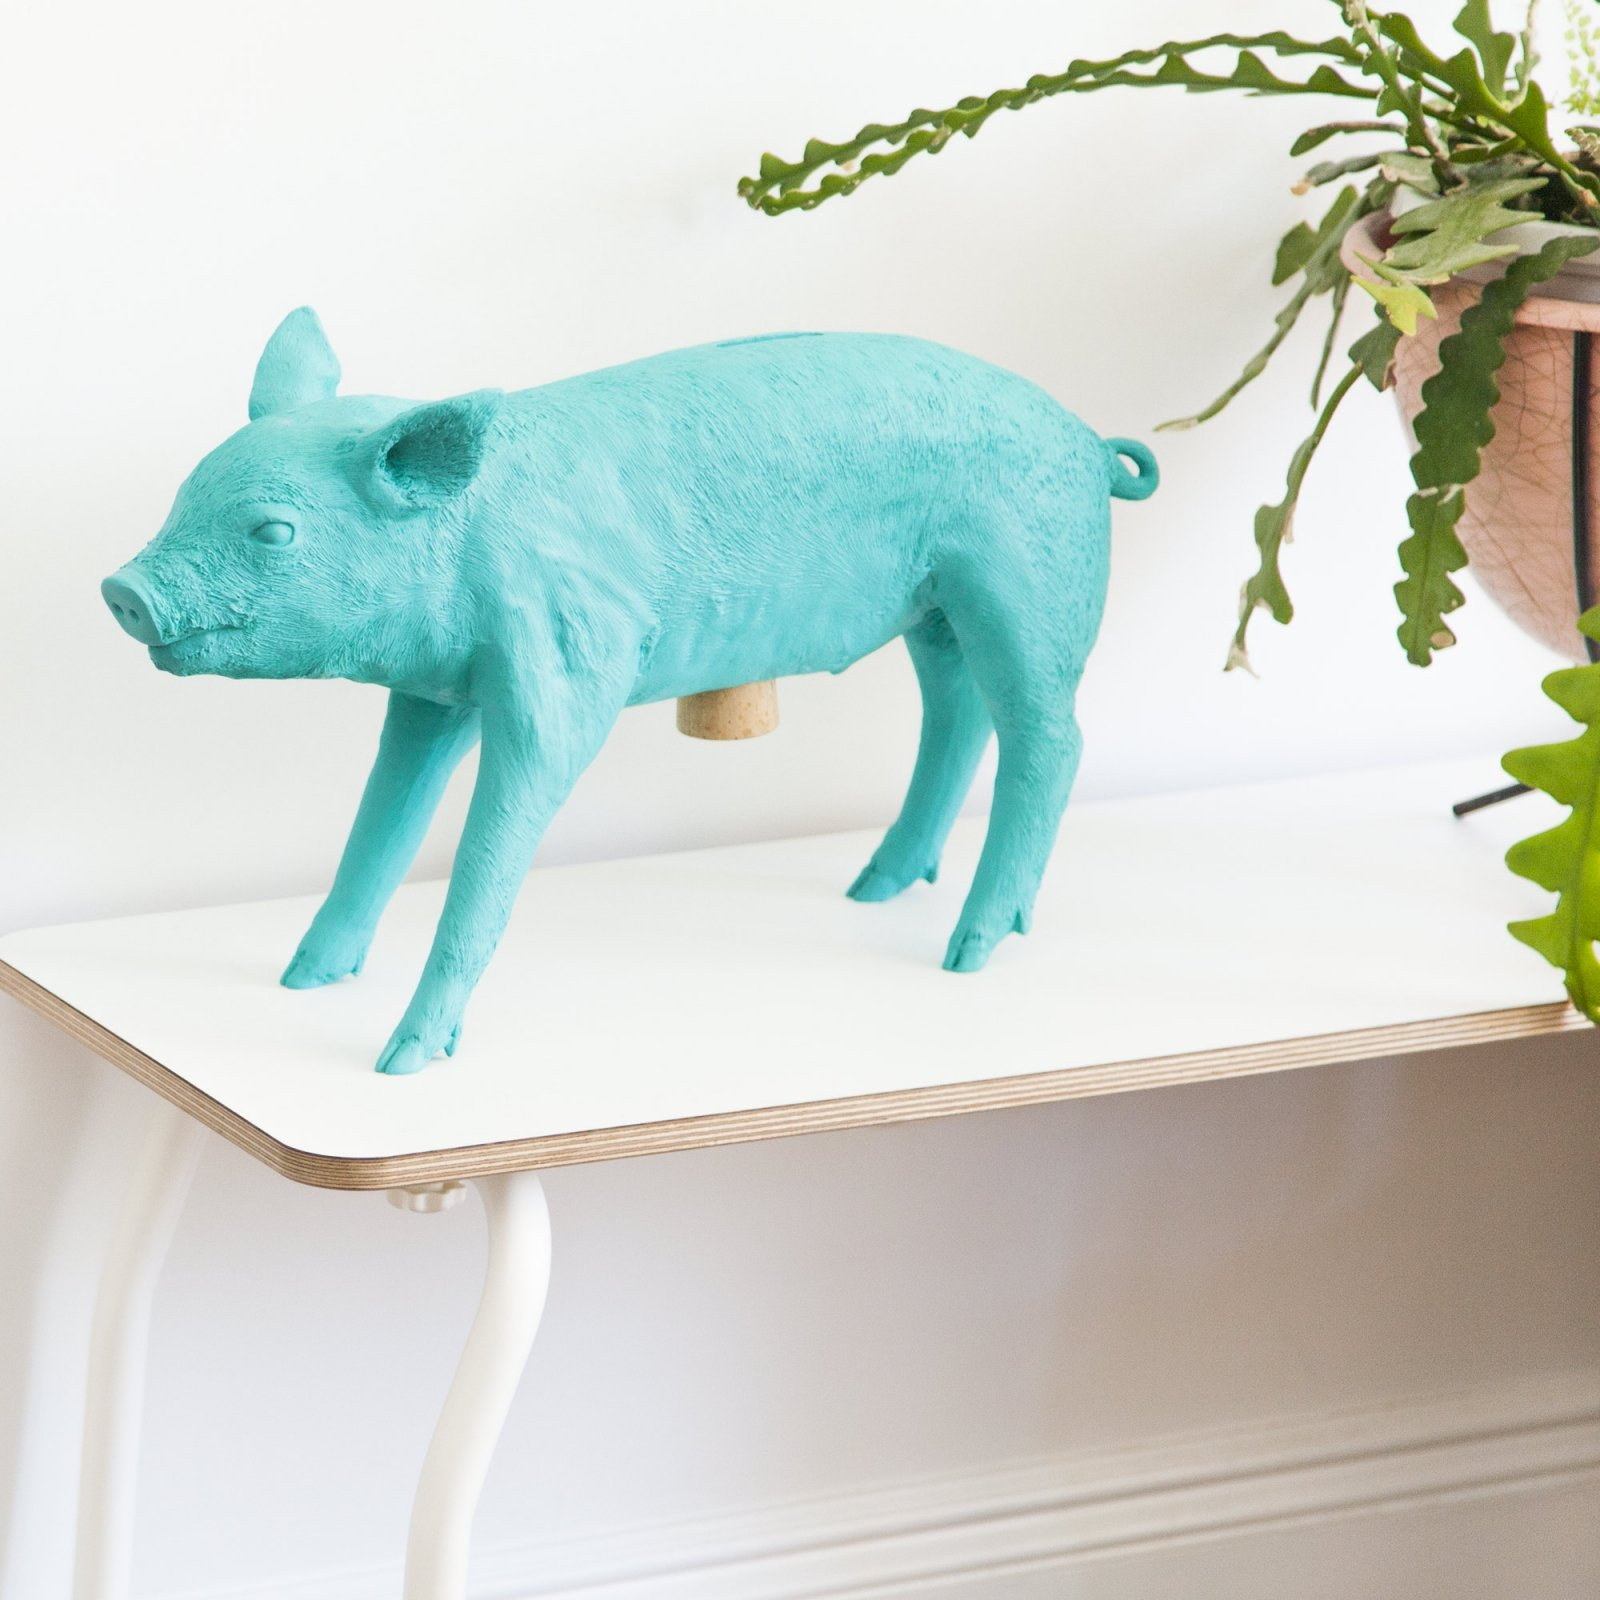 reality-bank-in-the-form-of-a-pig-matte-teal-3